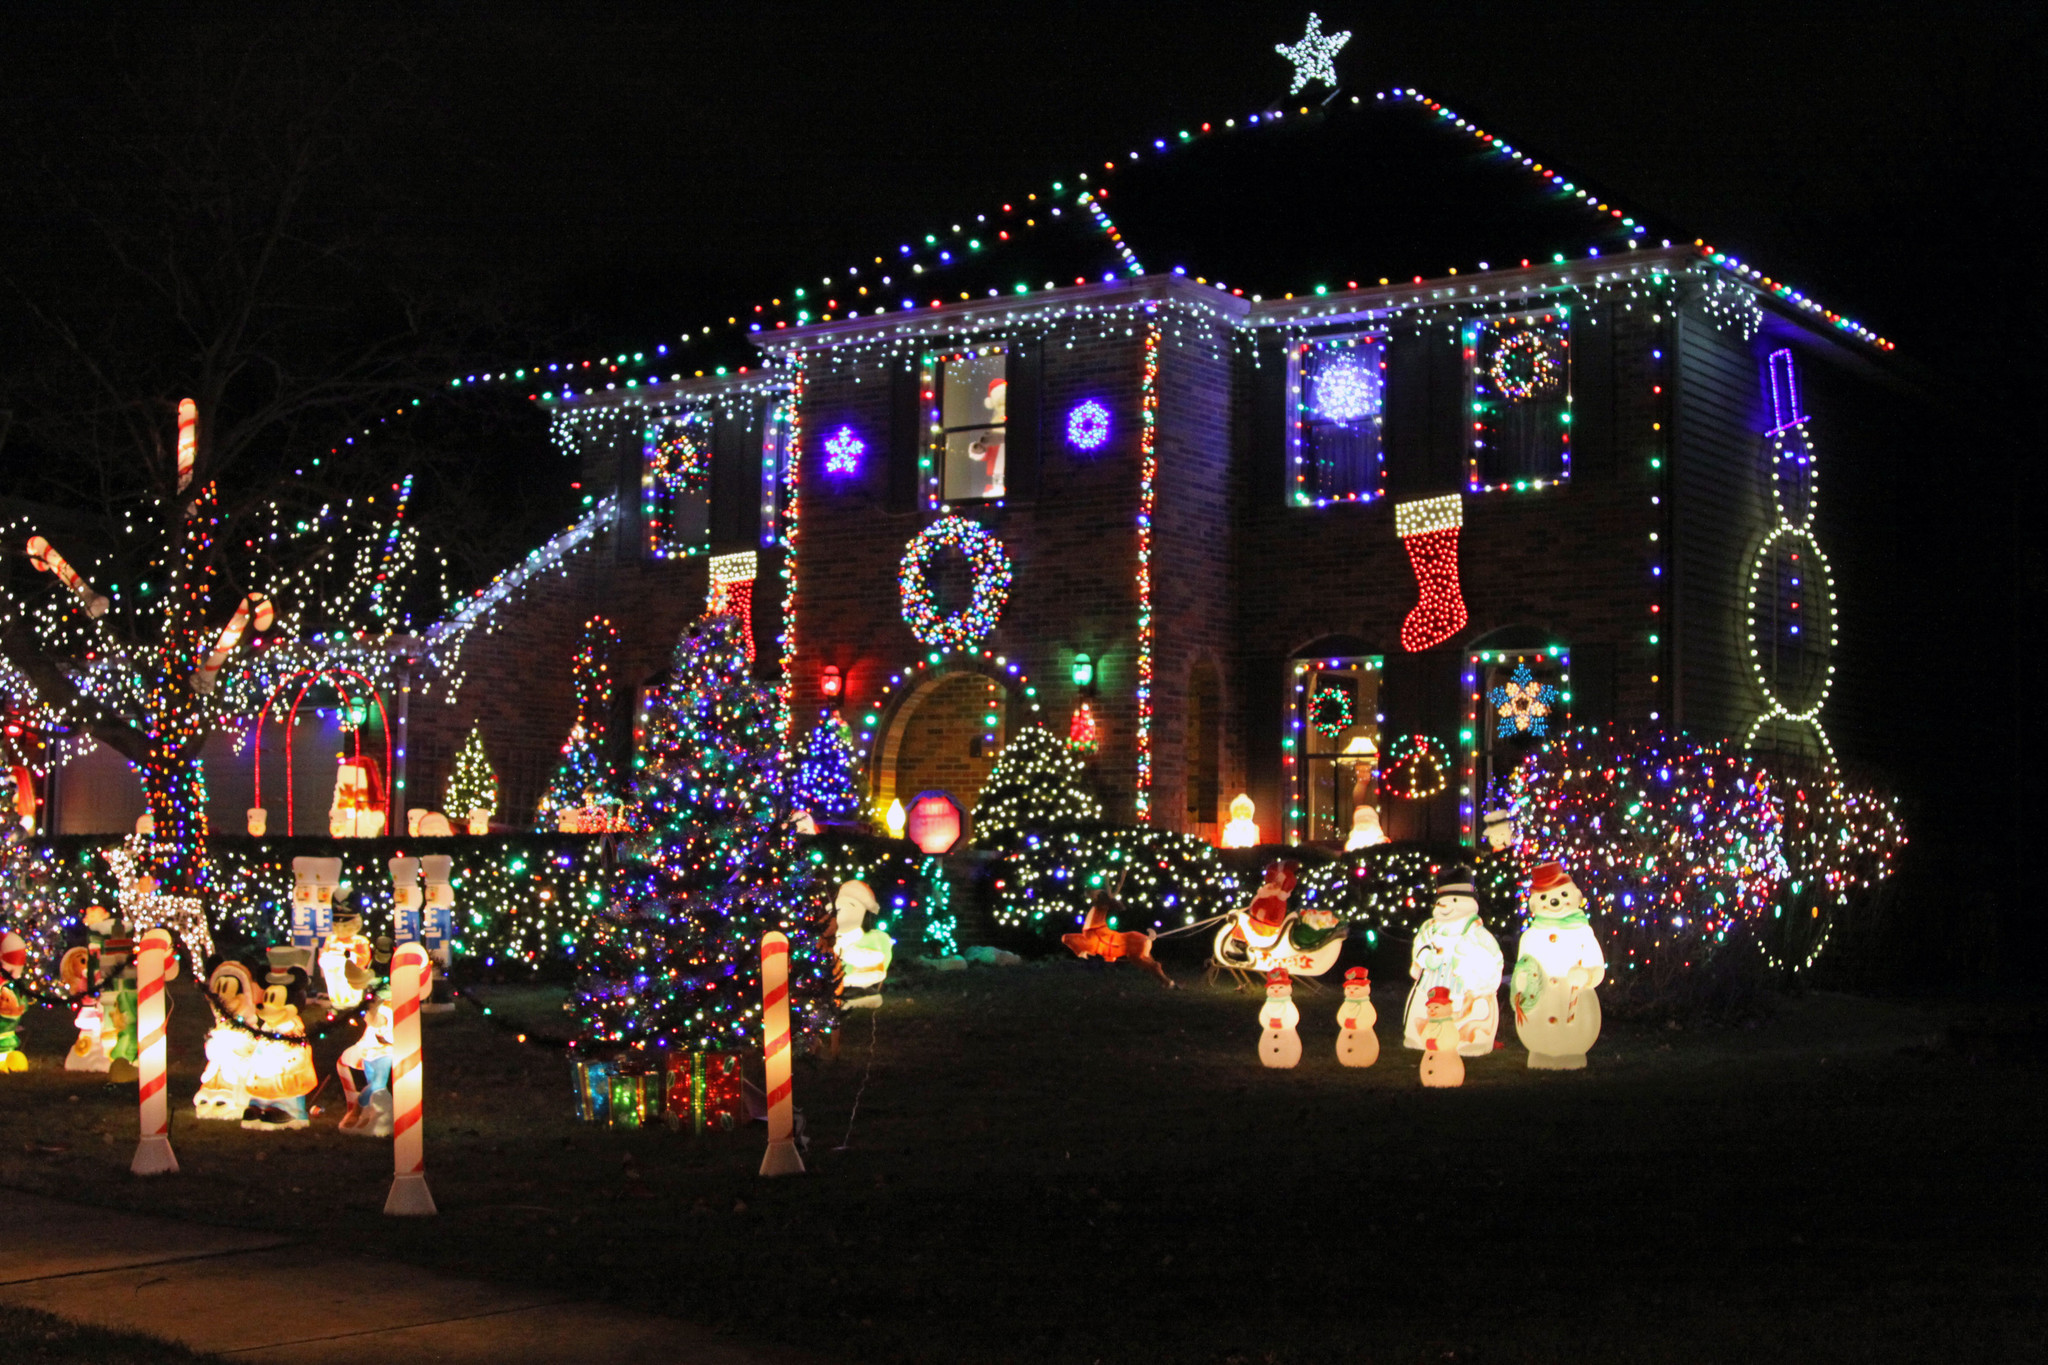 Where to find the best holiday lights in Naperville - Naperville Sun